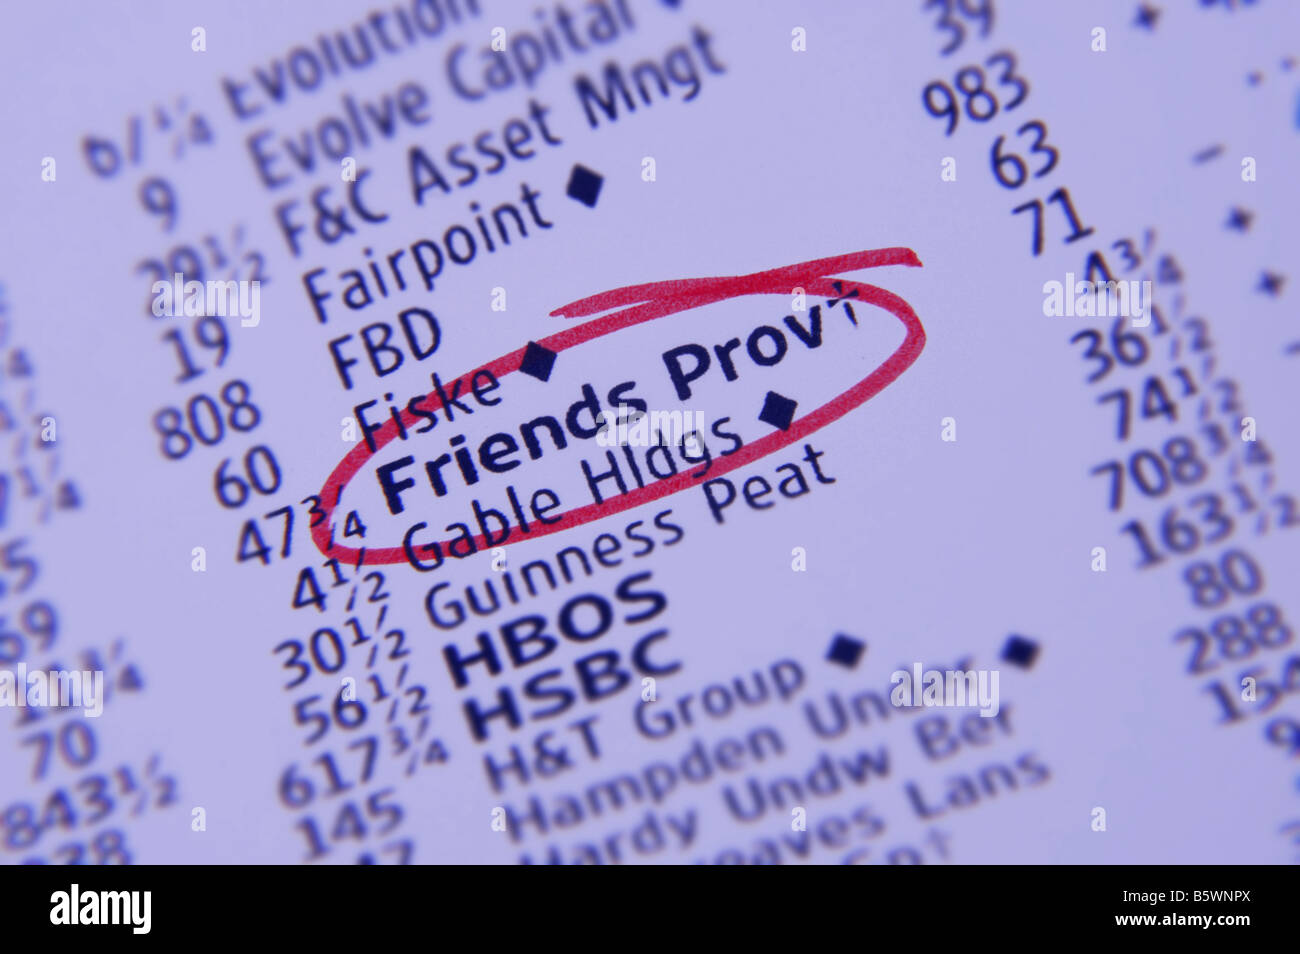 Friends Provident Stock Share Price Listing in Newspaper